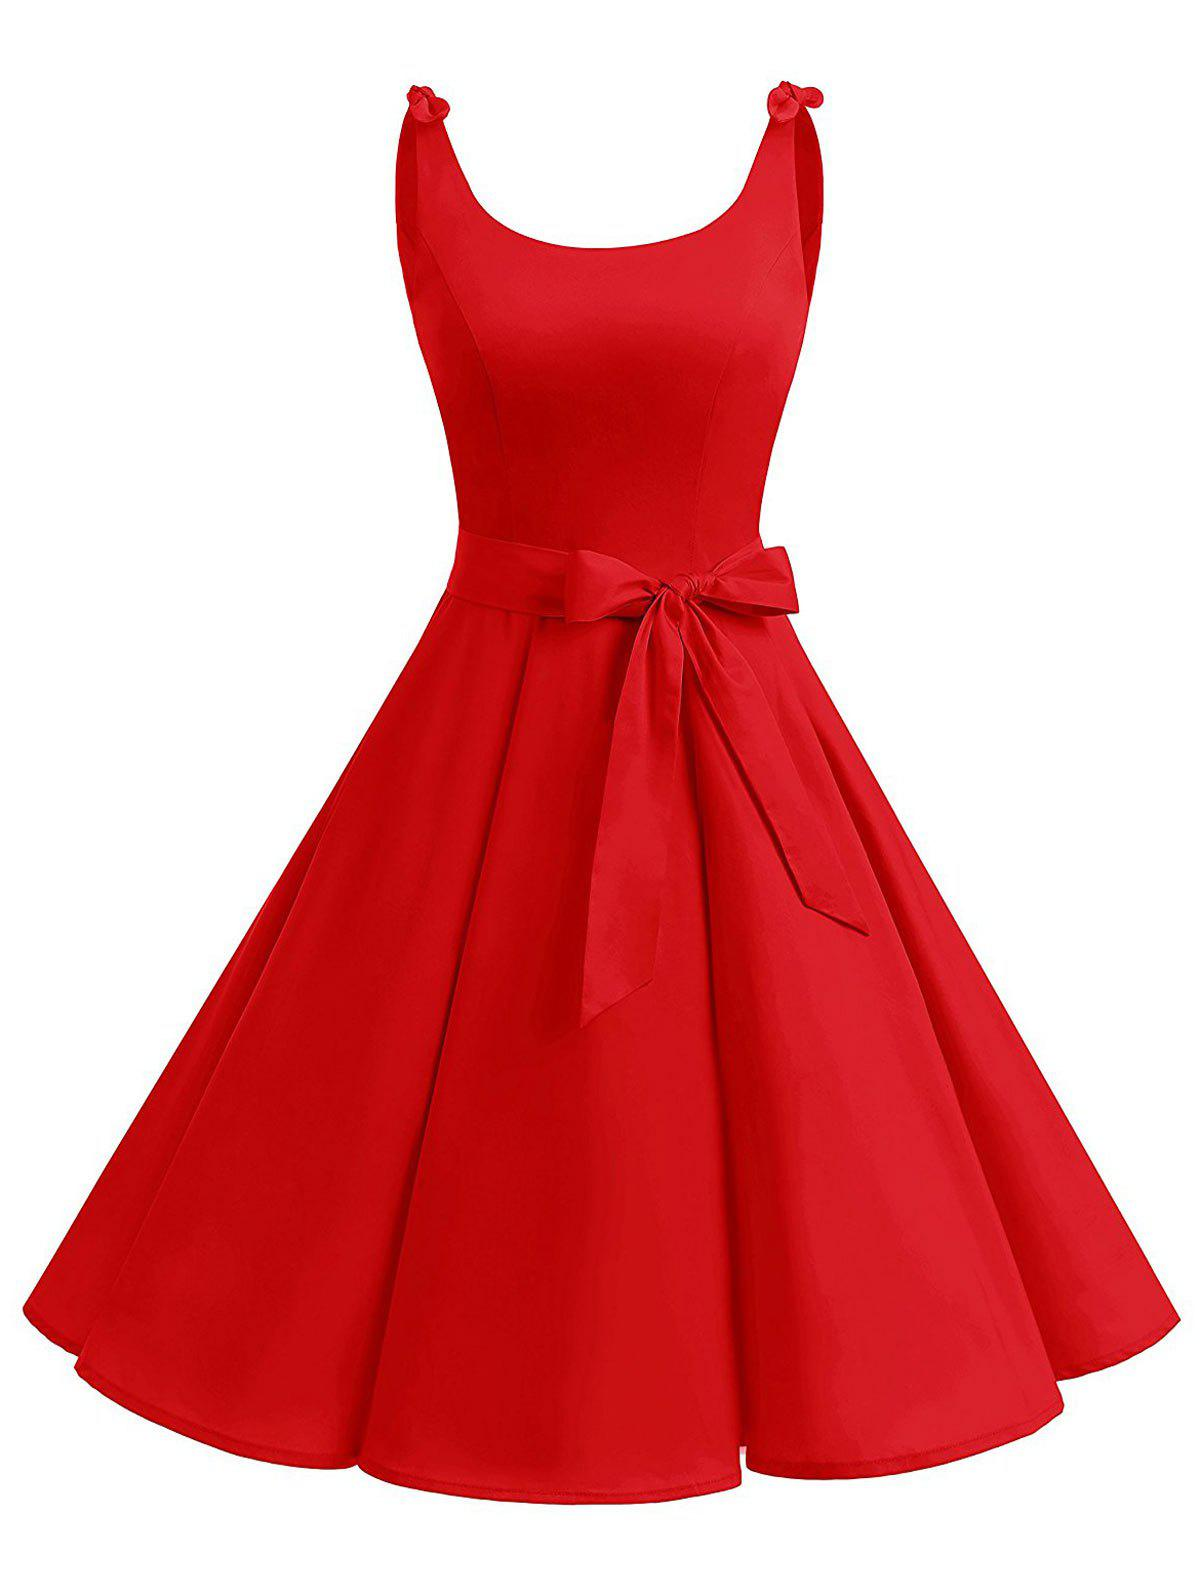 Latest Vintage Bowknot Cut Out Skater Party Dress